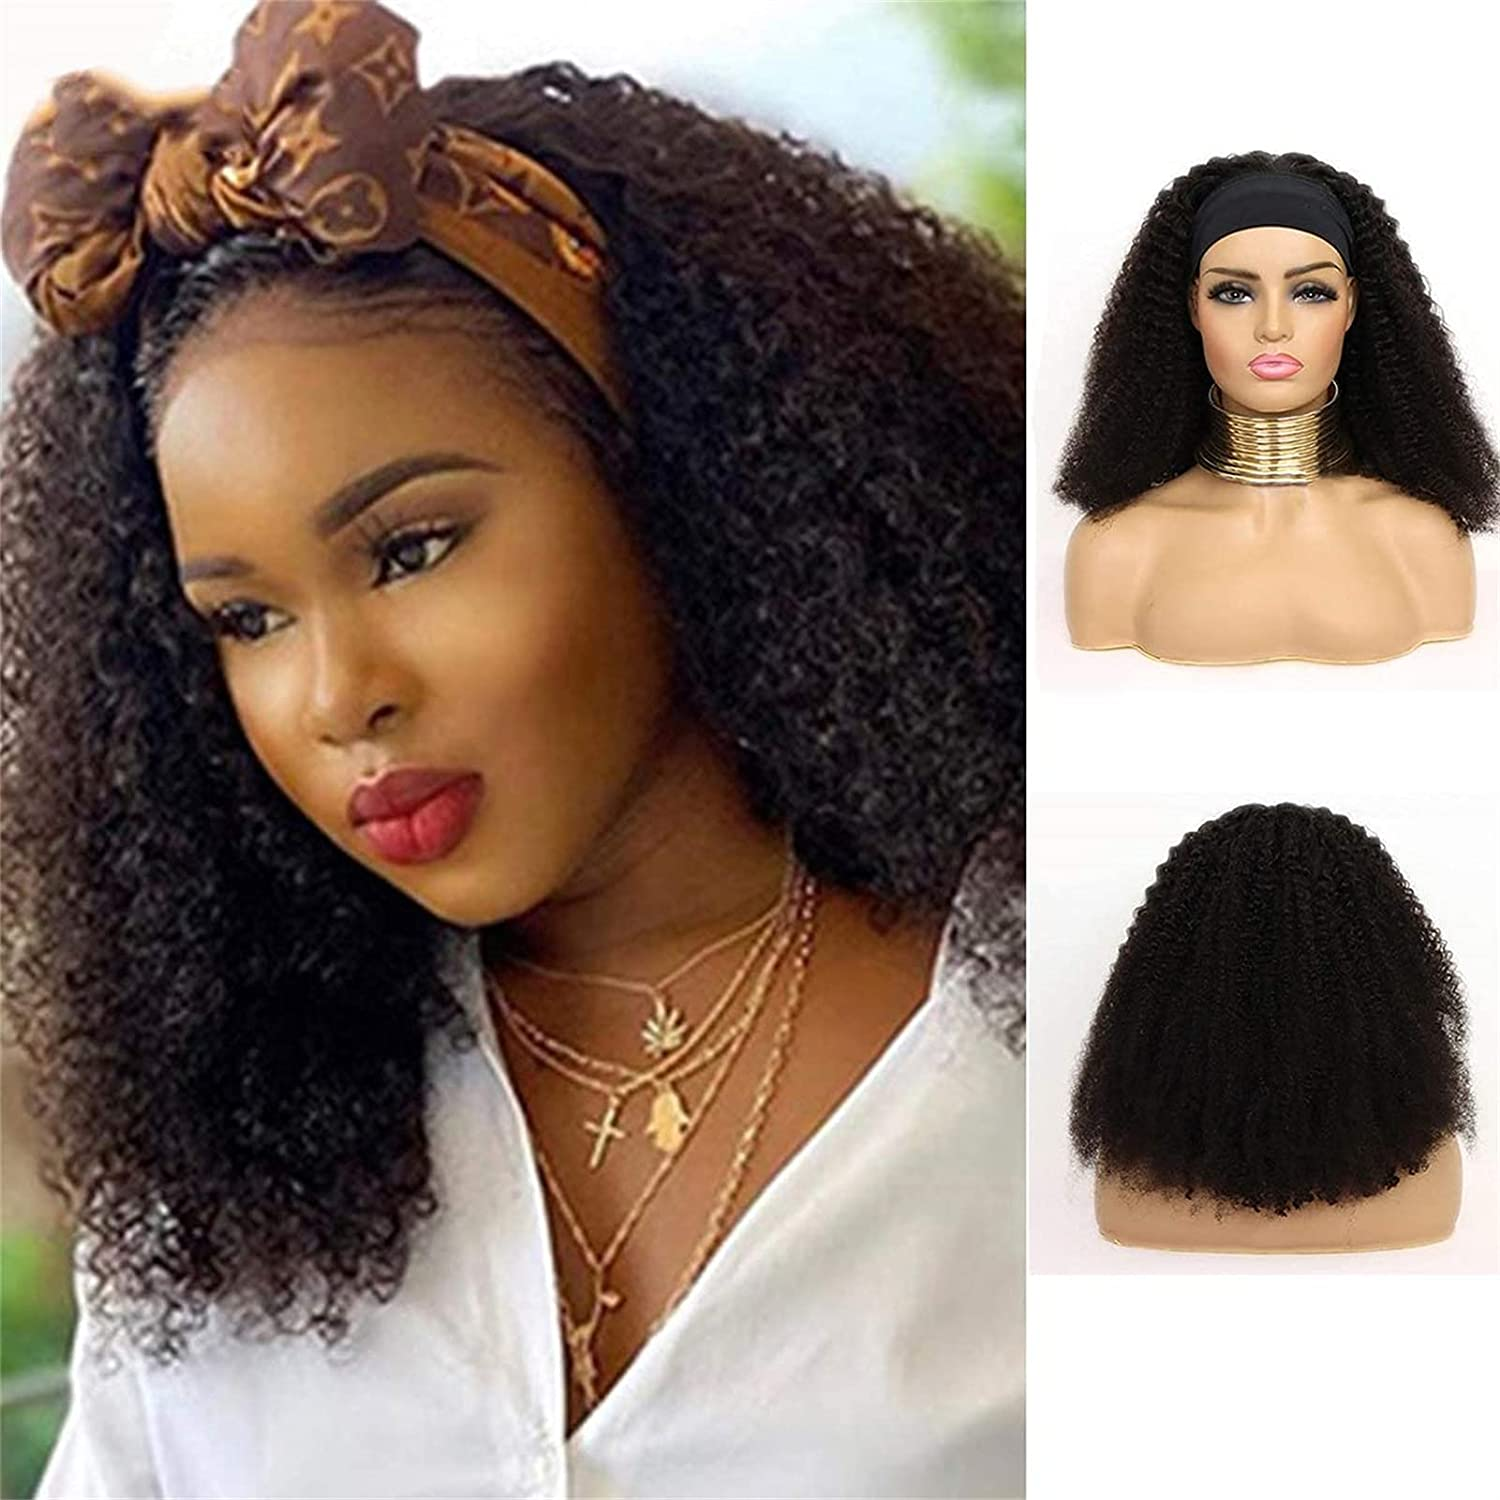 Free Shipping New Hair Limited time trial price Replacement Wig Afro Wigs for Black Curly Women